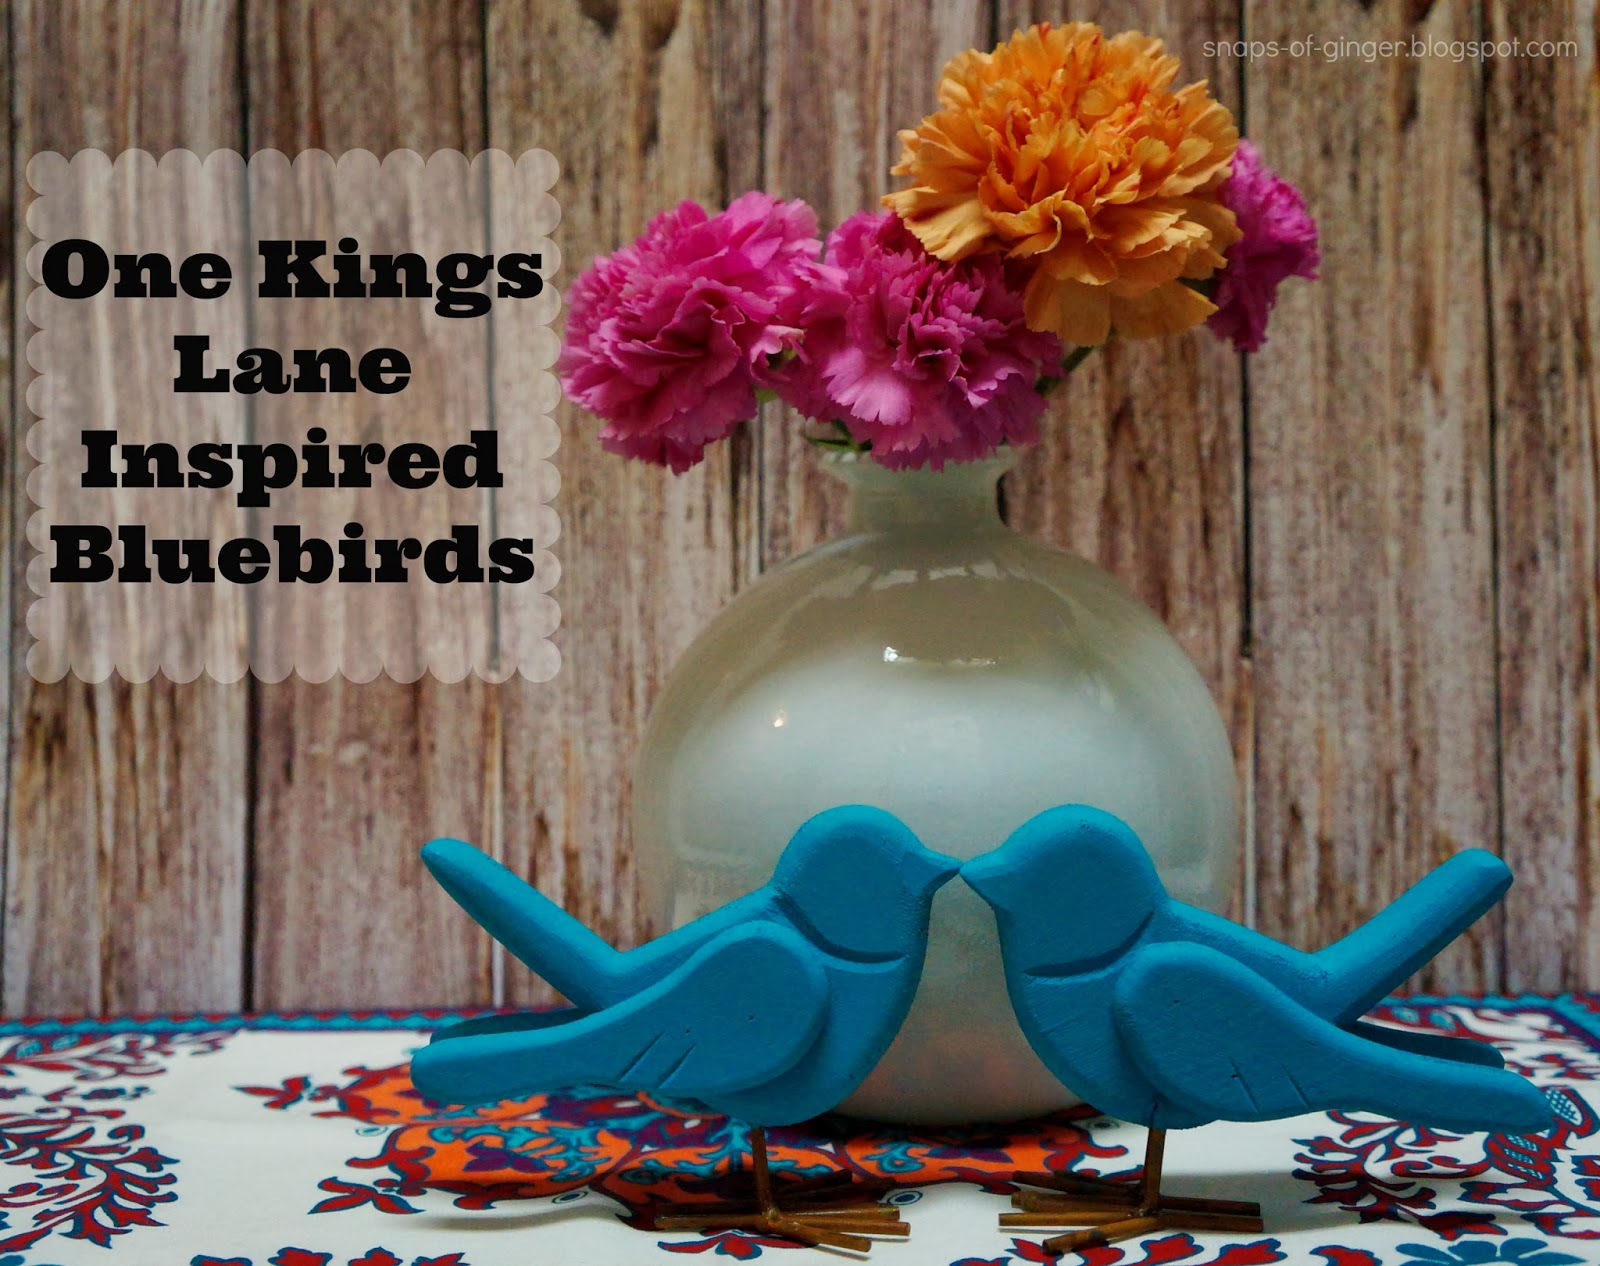 http://snaps-of-ginger.blogspot.com/2014/02/one-kings-lane-inspired-bluebirds.html